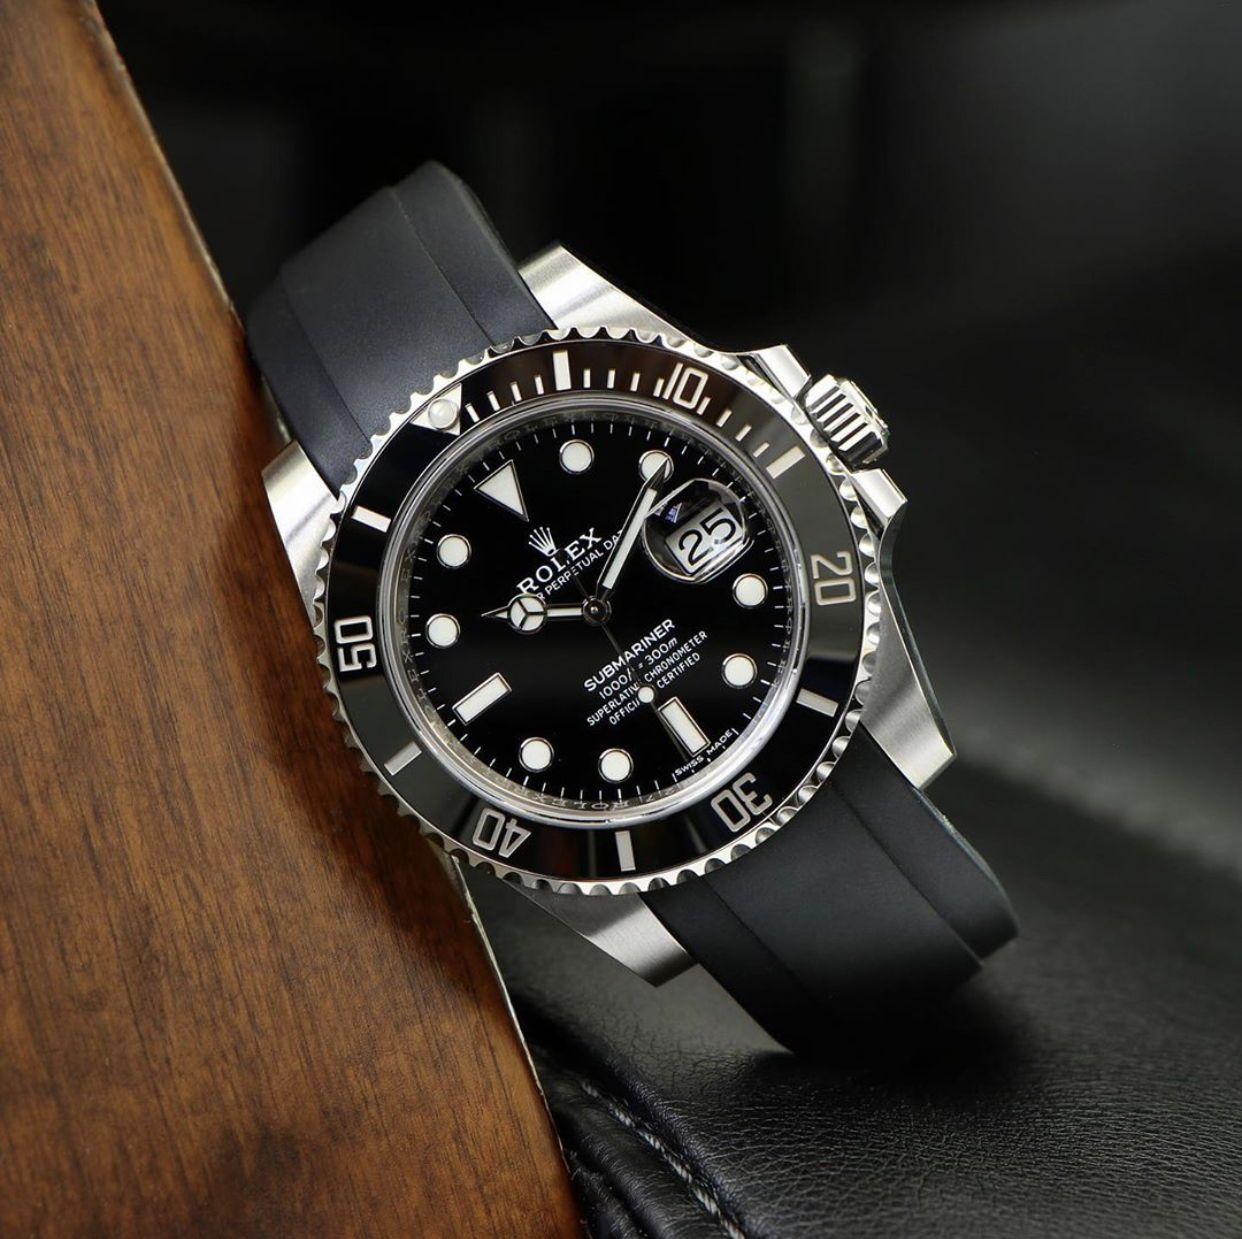 Pin on Rubber Watch Bands for Rolex